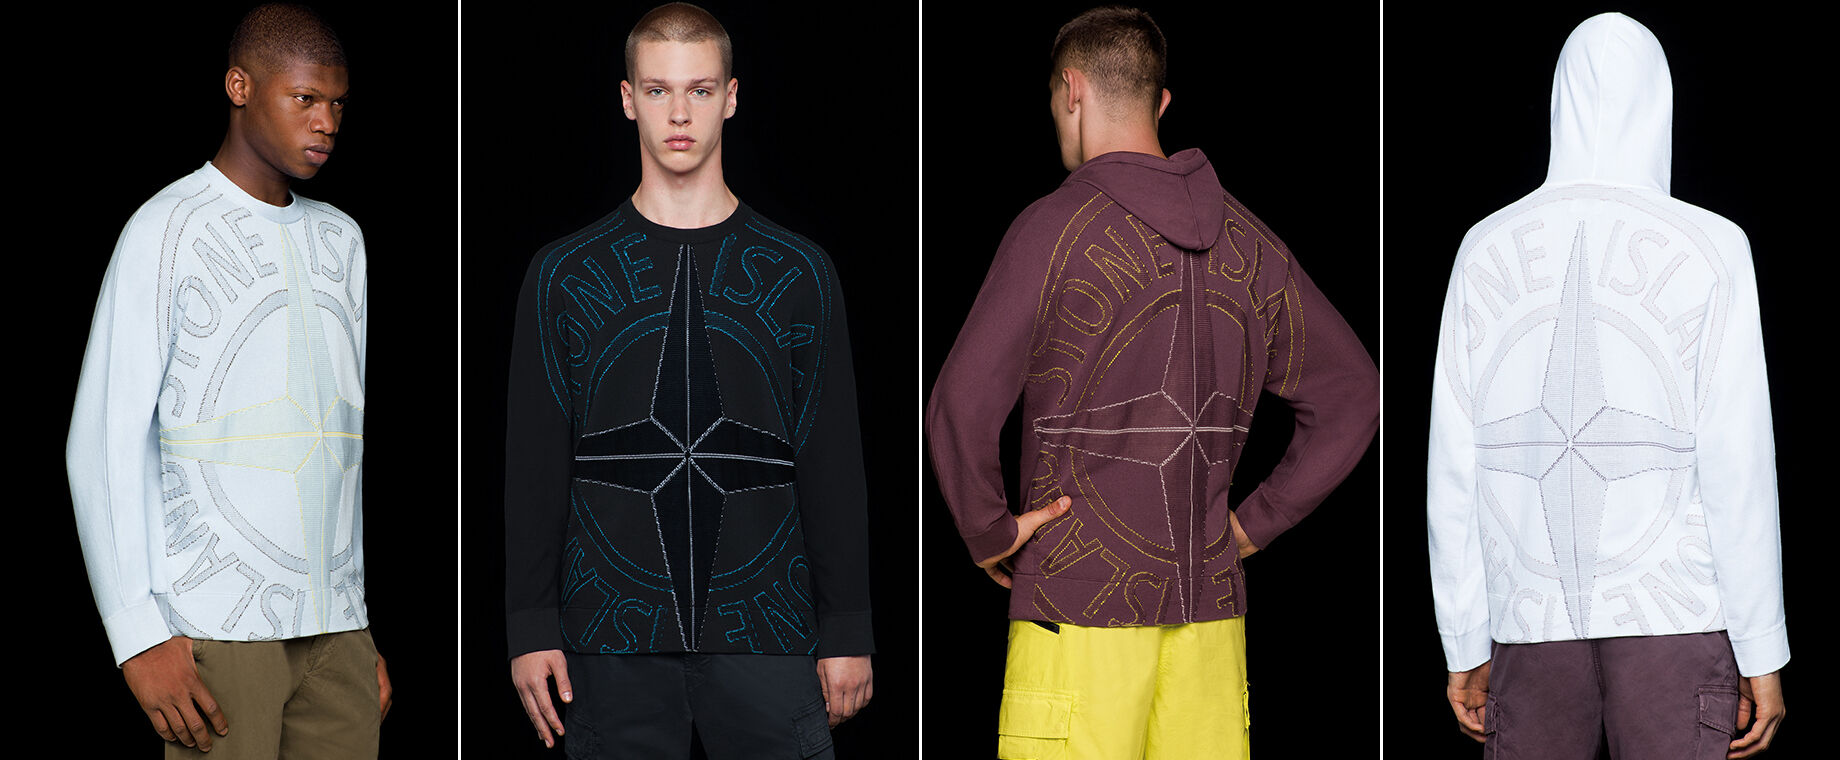 Four models wearing pants in different styles and colors, two of them wearing a crewneck knit with long sleeves and a large Stone Island compass rose logo embroidery on the front, the other two showing the same embroidery on the back of hooded knits.